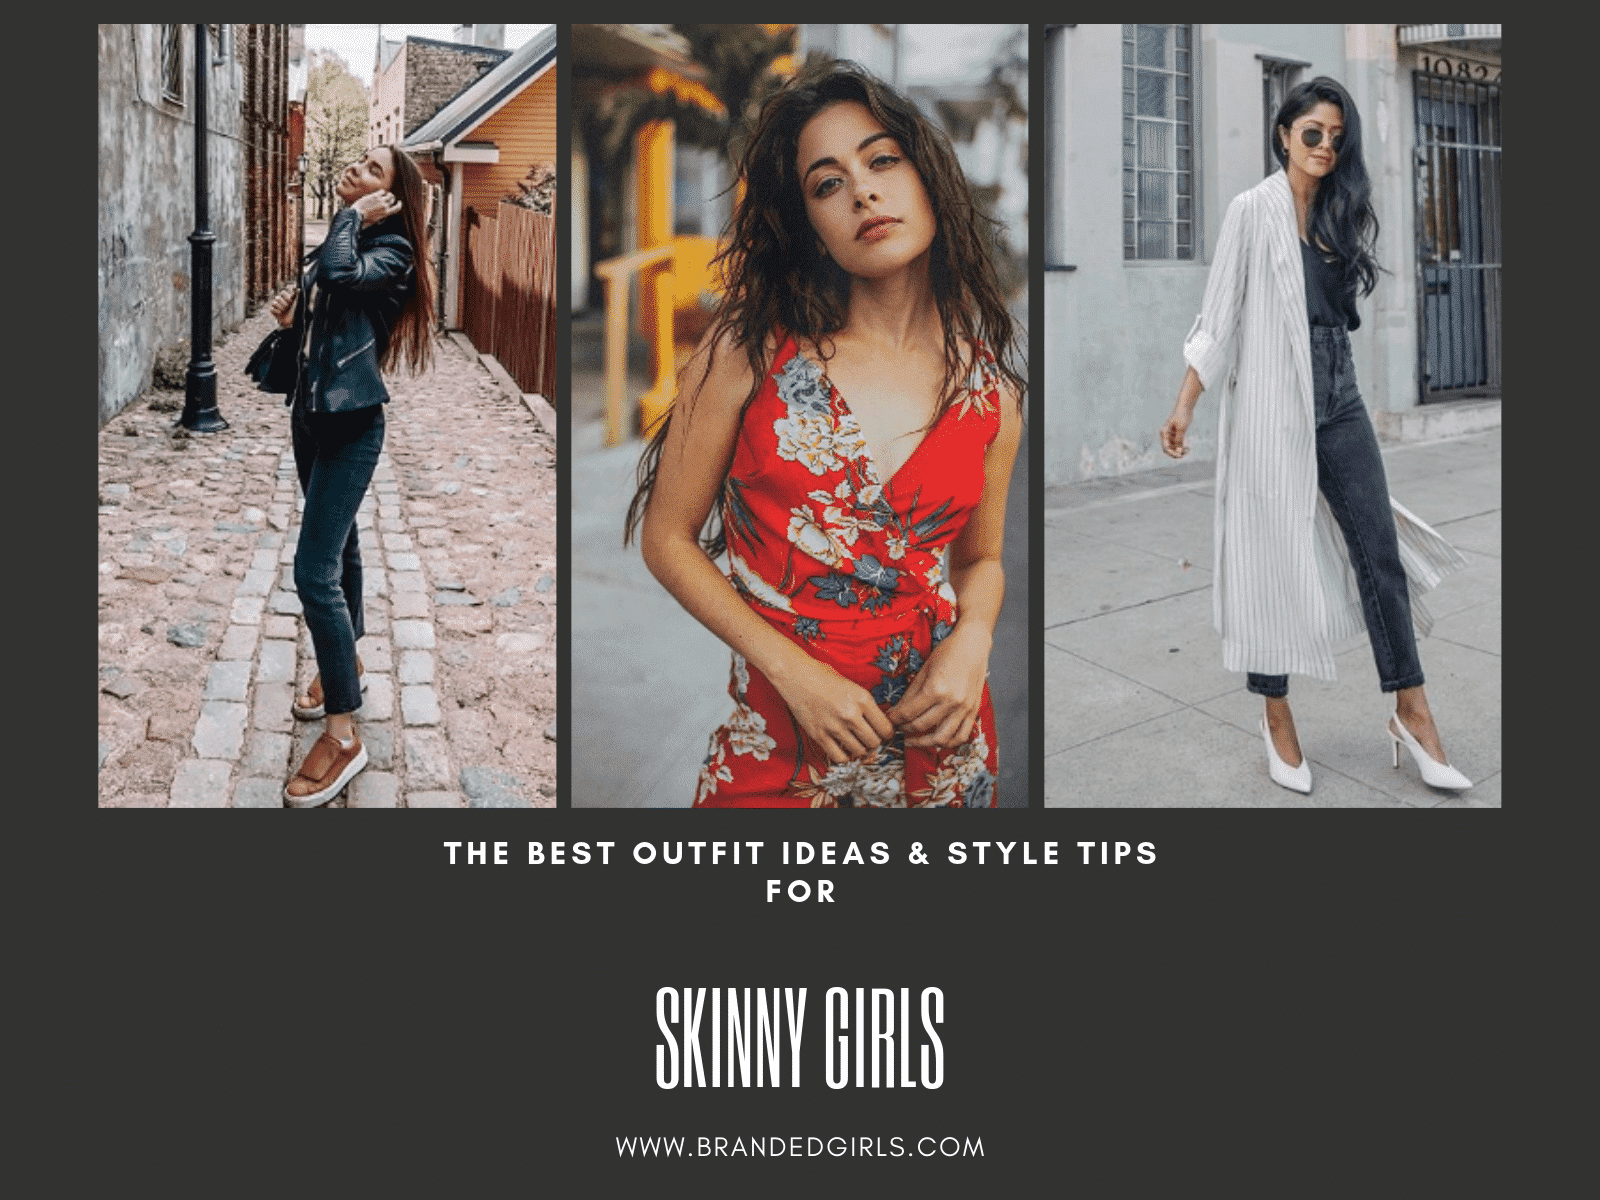 83d321440d0c1 25 Outfits for Skinny Girls - What to Wear If You're Skinny